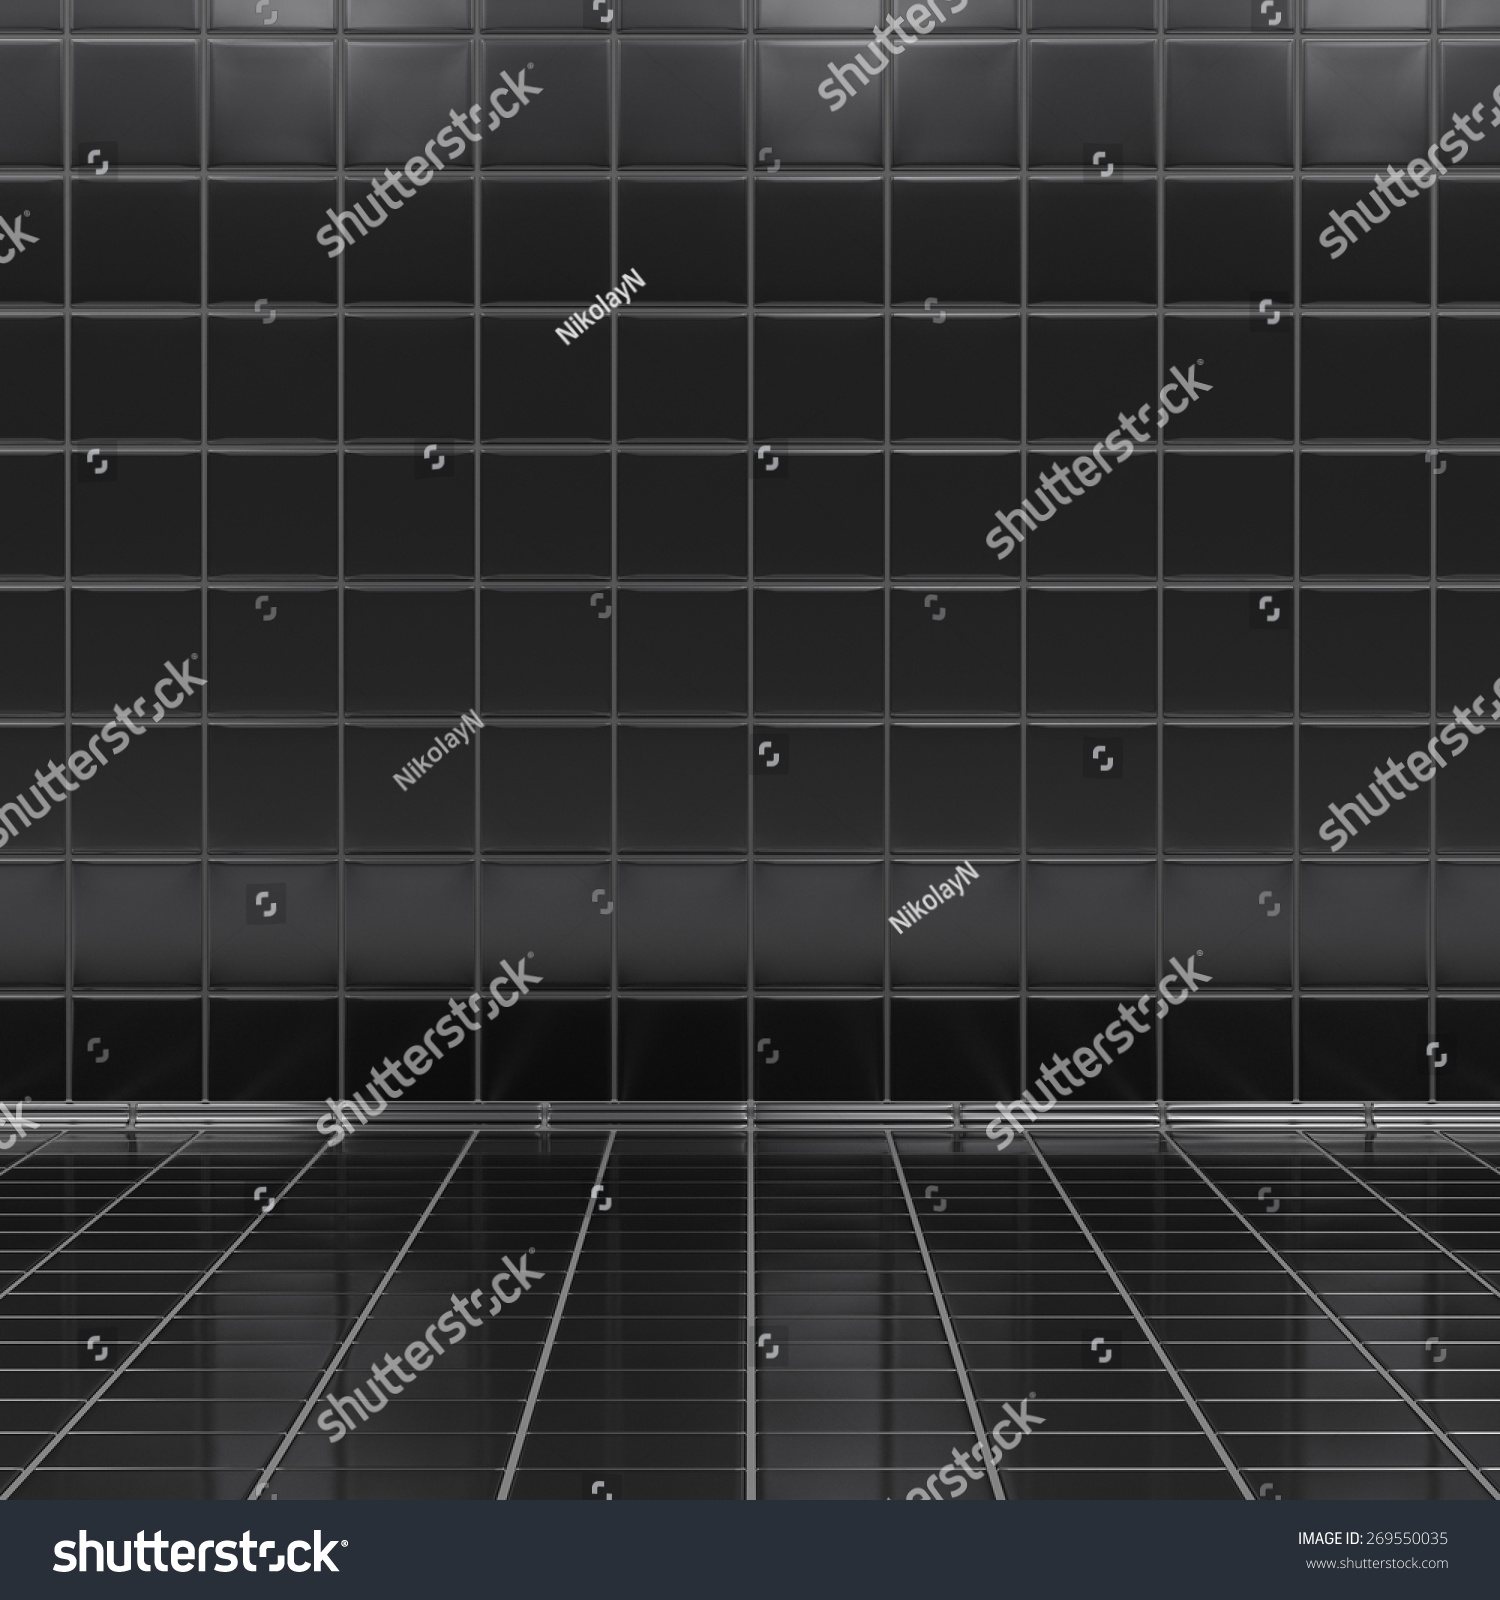 Black tiles room interior wall and floor grid stock photo for Interior design room grid